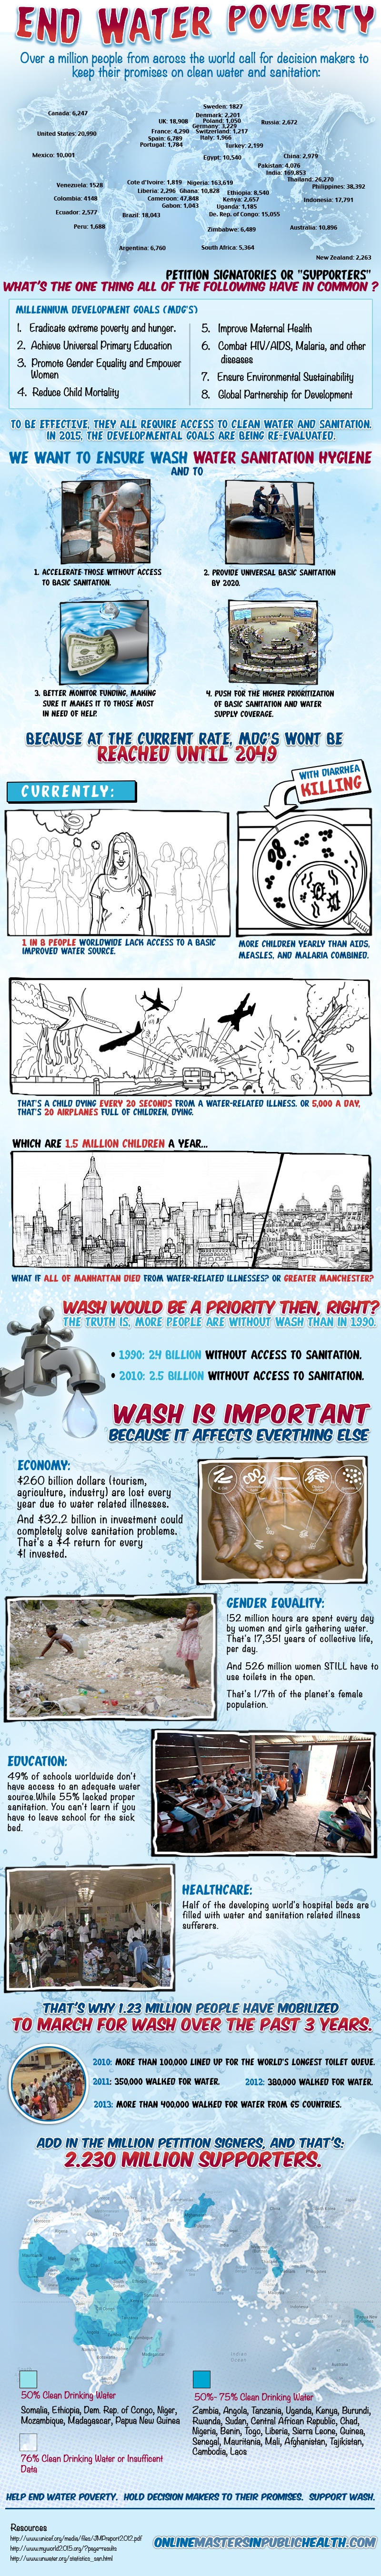 end-water-poverty_5262f13e479ea